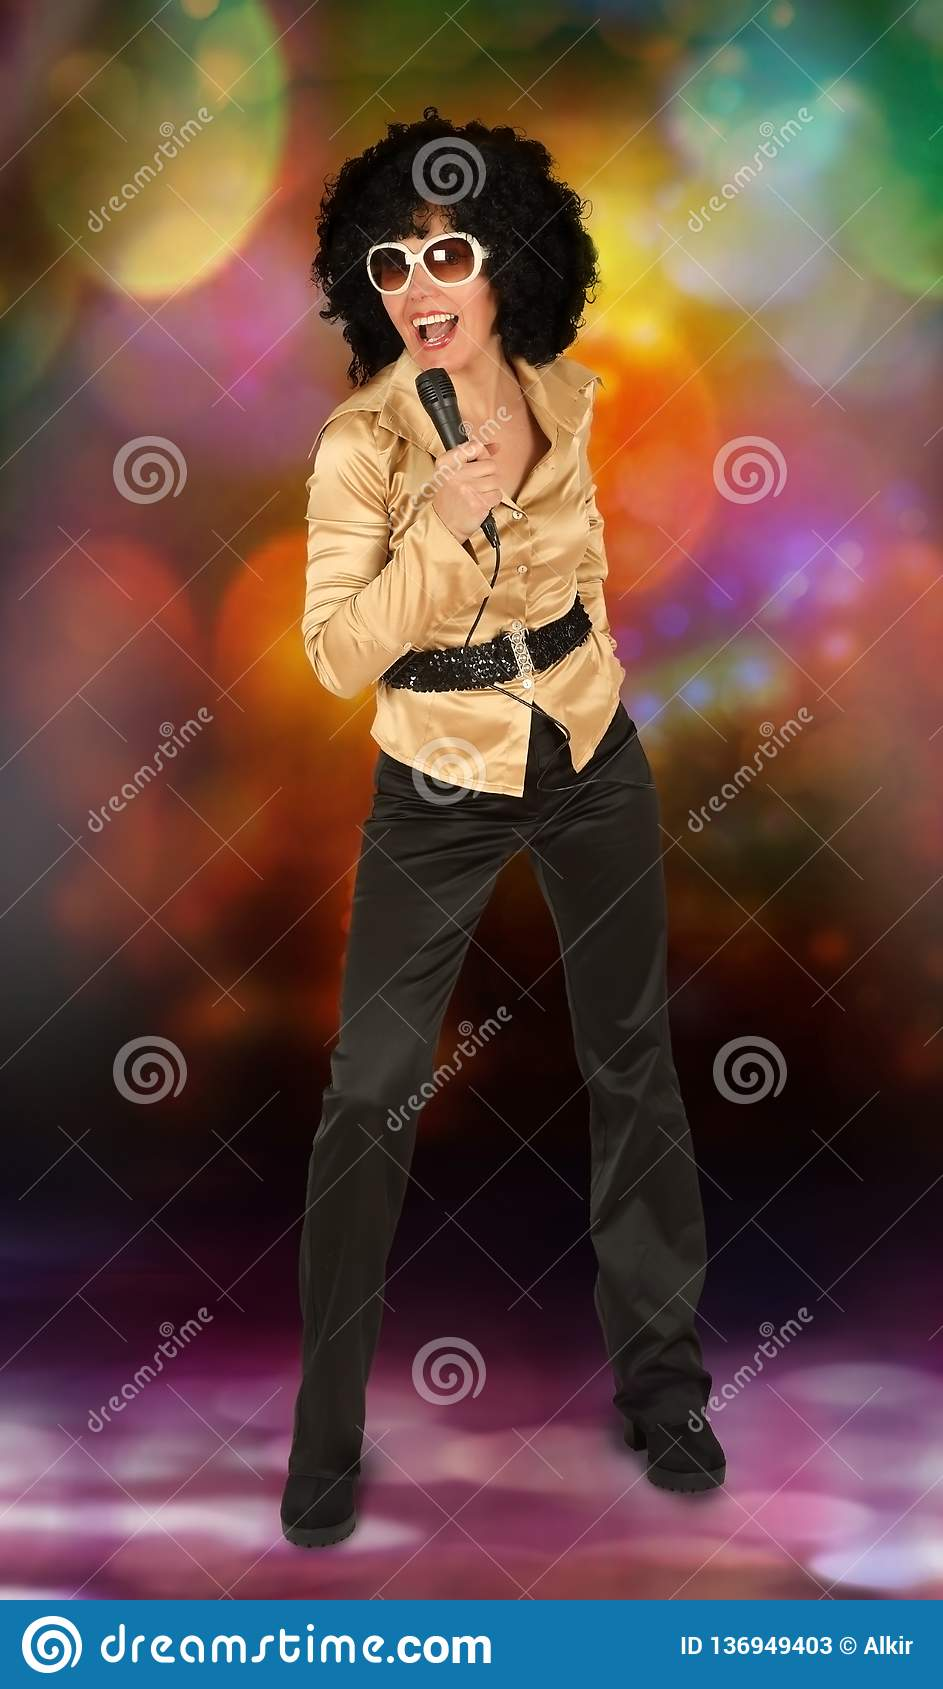 Disco Woman With The Microphone Stock Image - Image of